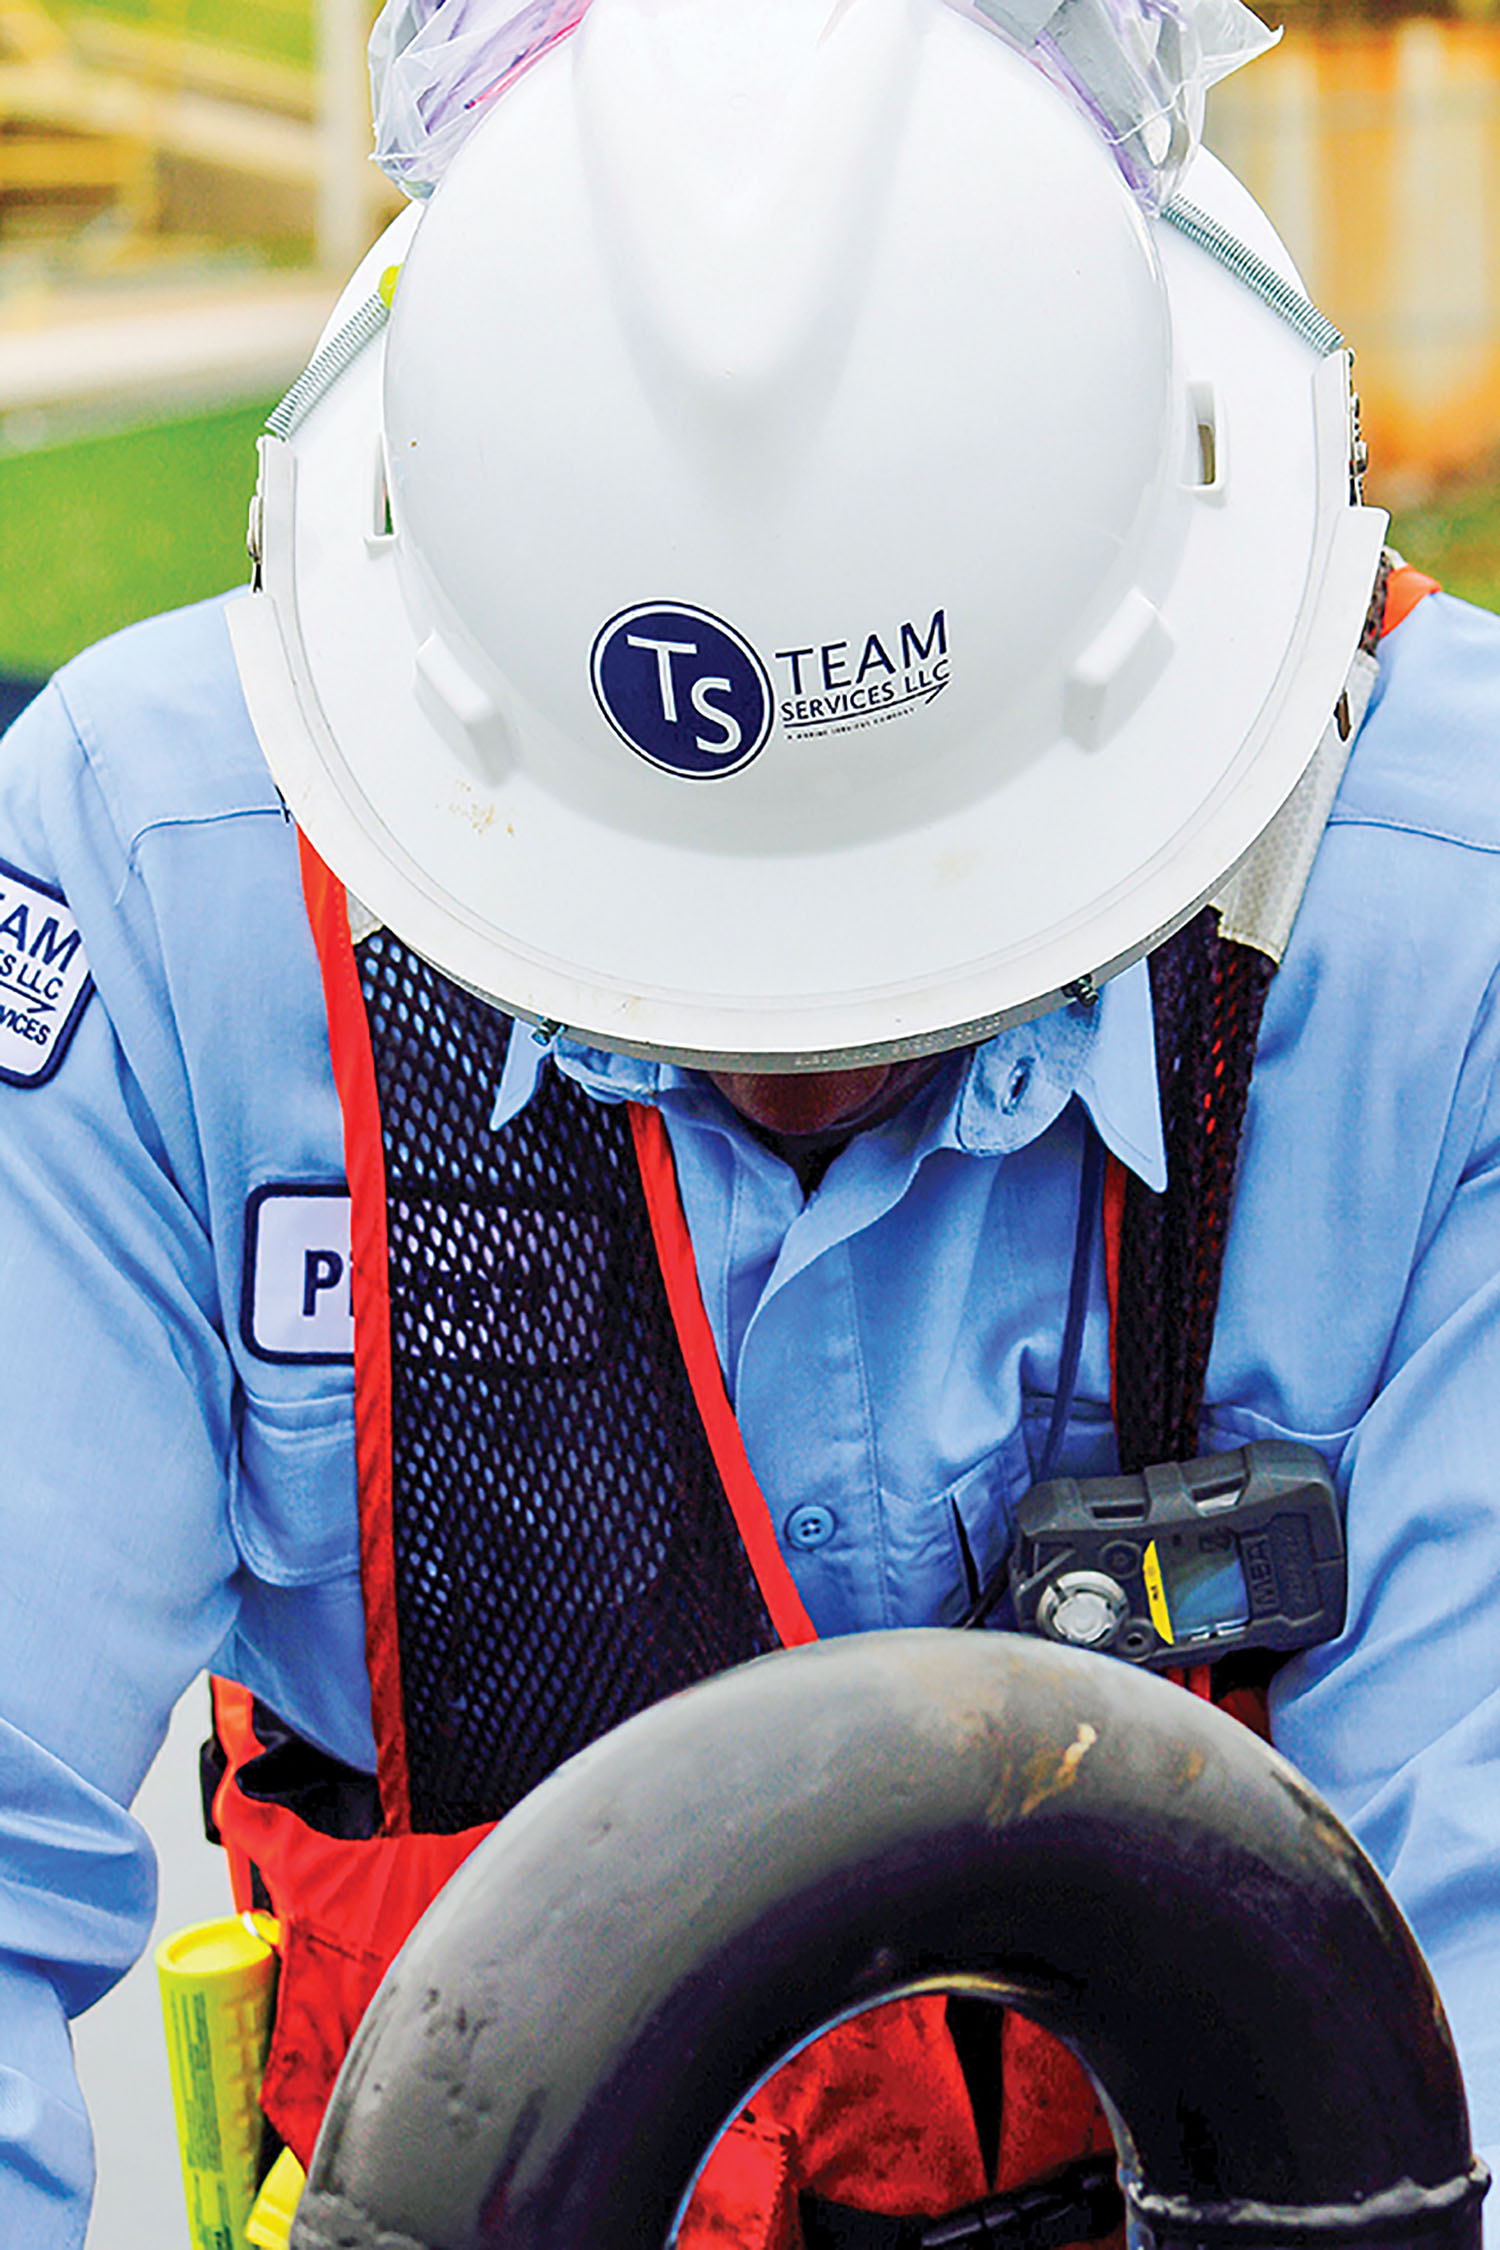 A Team Services tankerman at work. (Photo courtesy of Team Services)